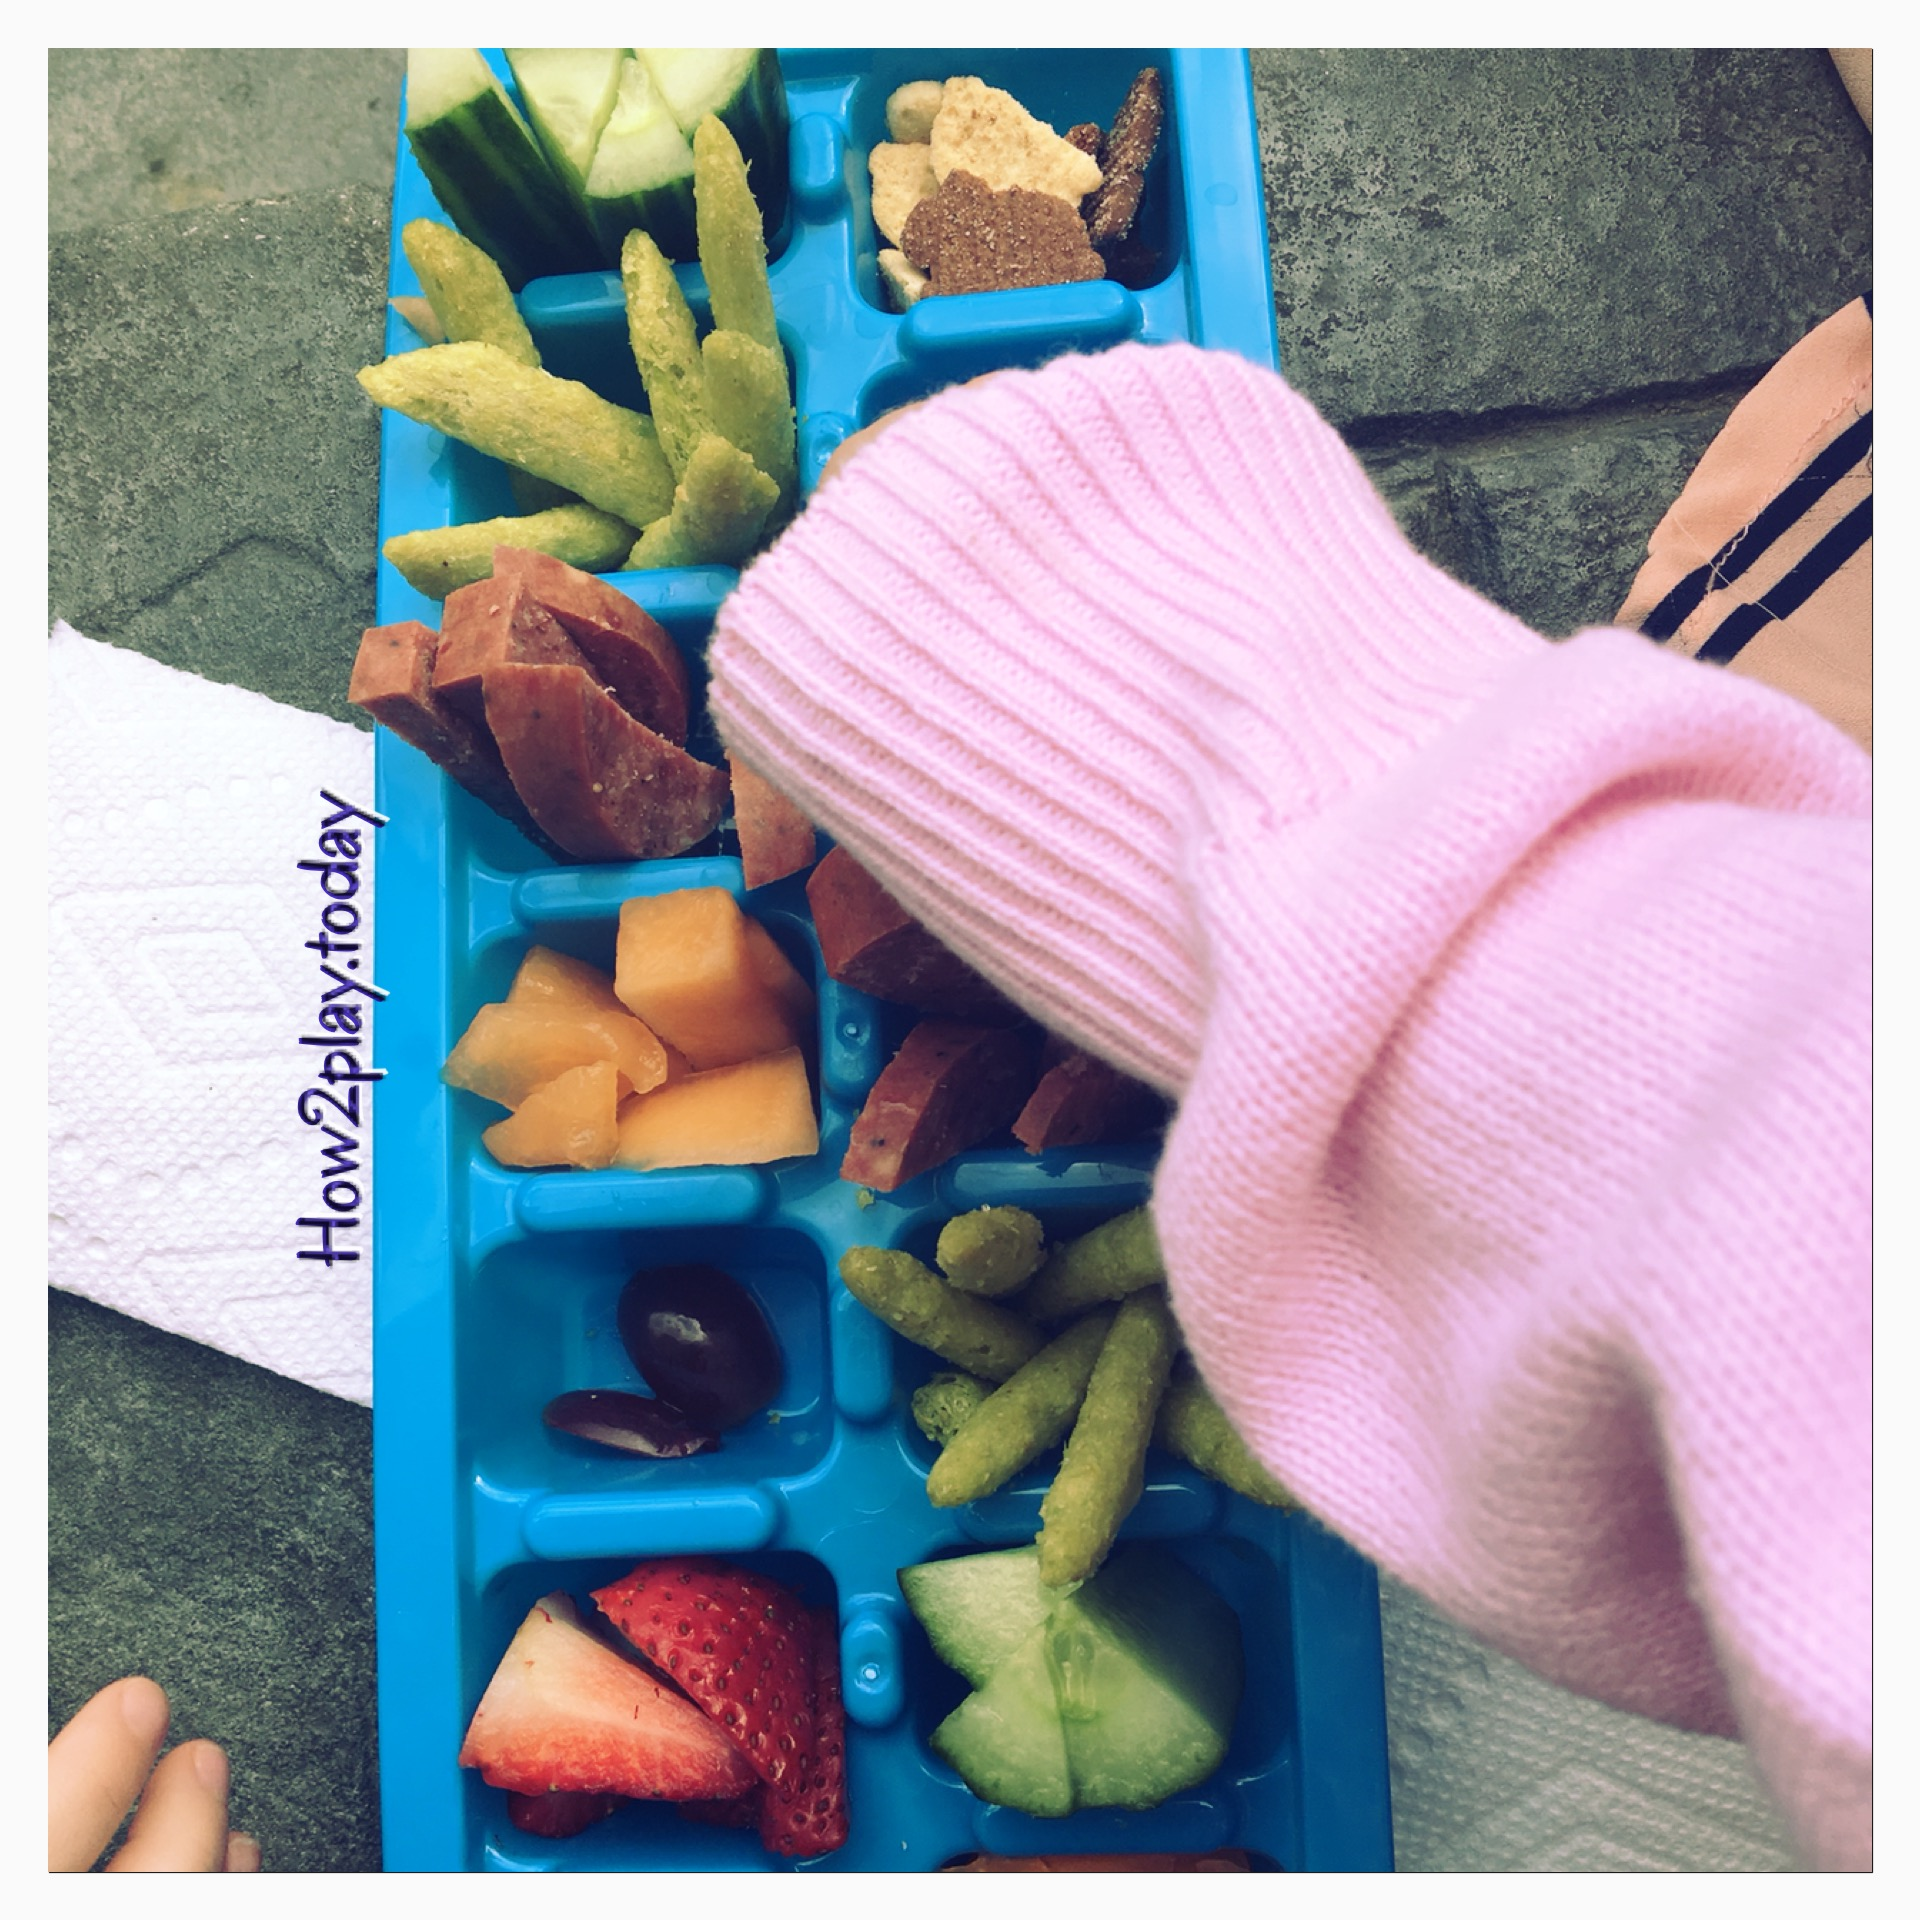 Change out their plates for ice cube trays and watch them eat up some great finger foods